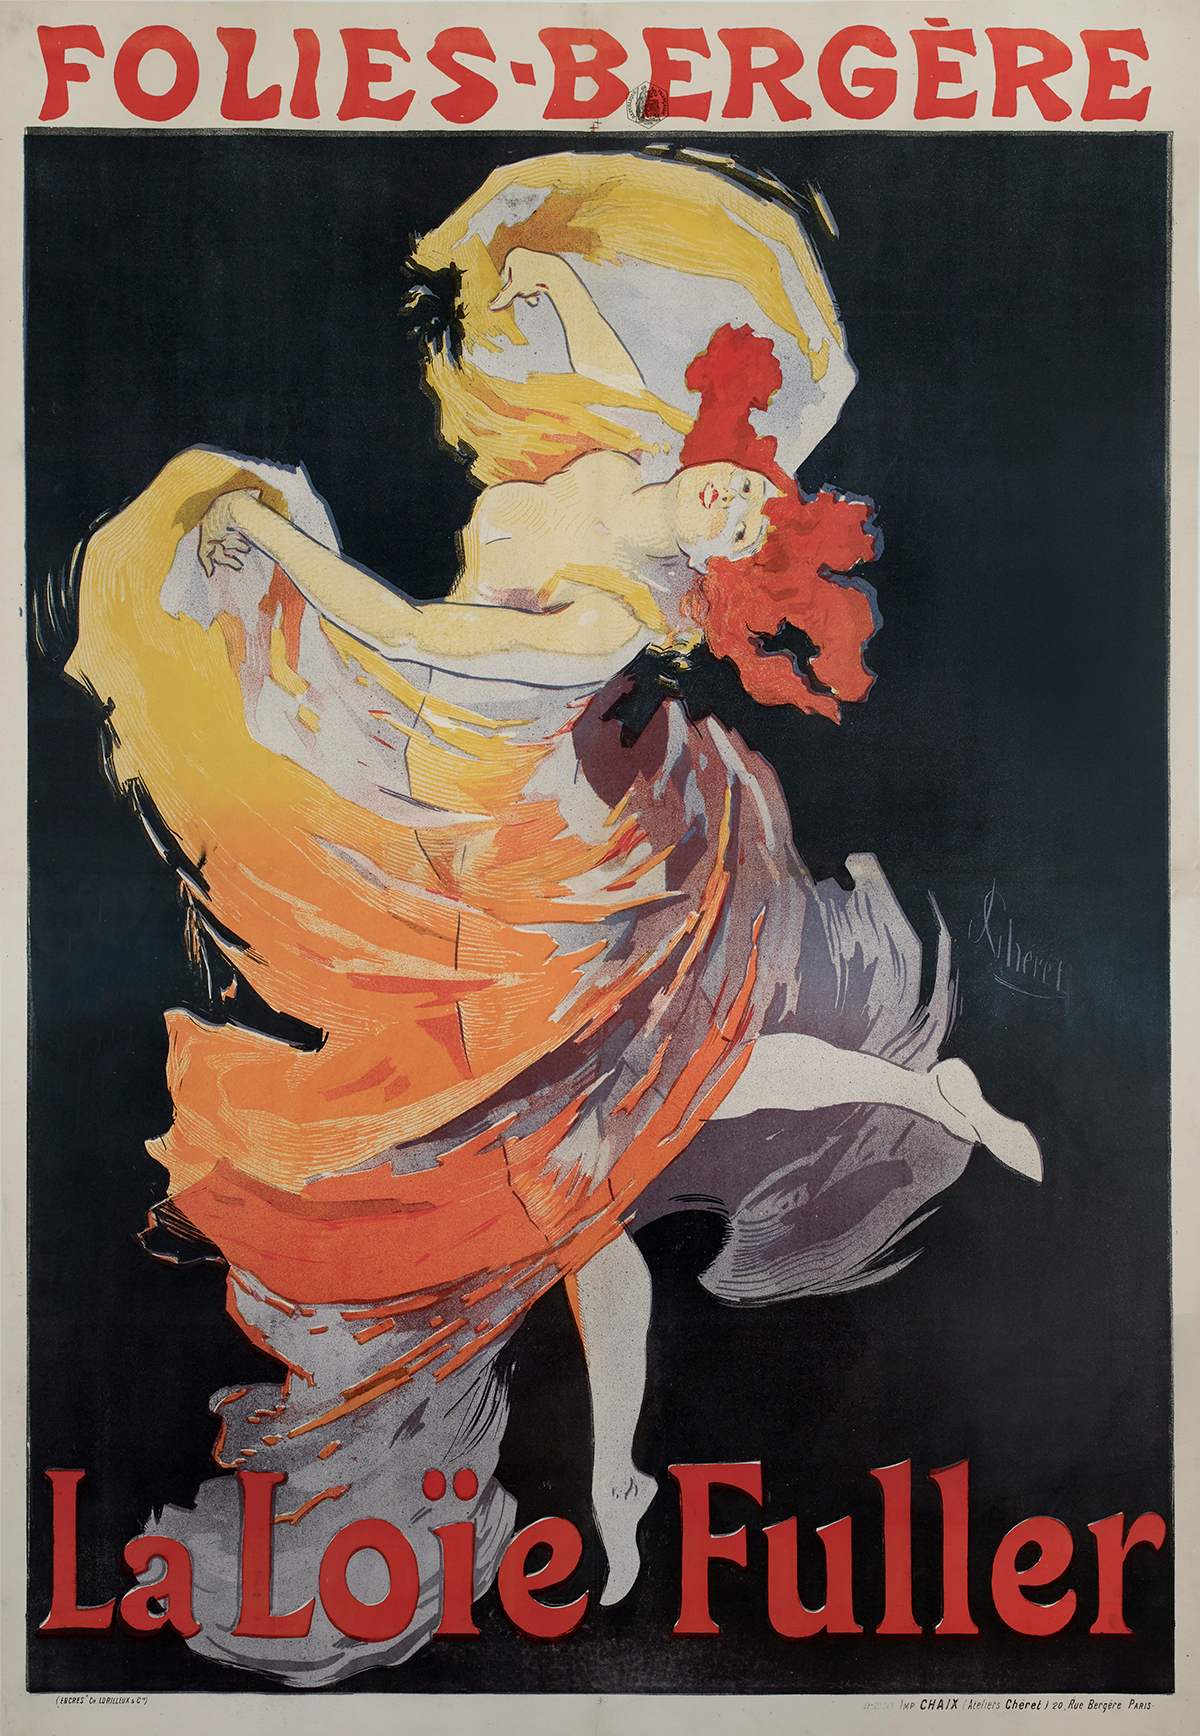 Color lithograph of a woman dancing with a flowing gown